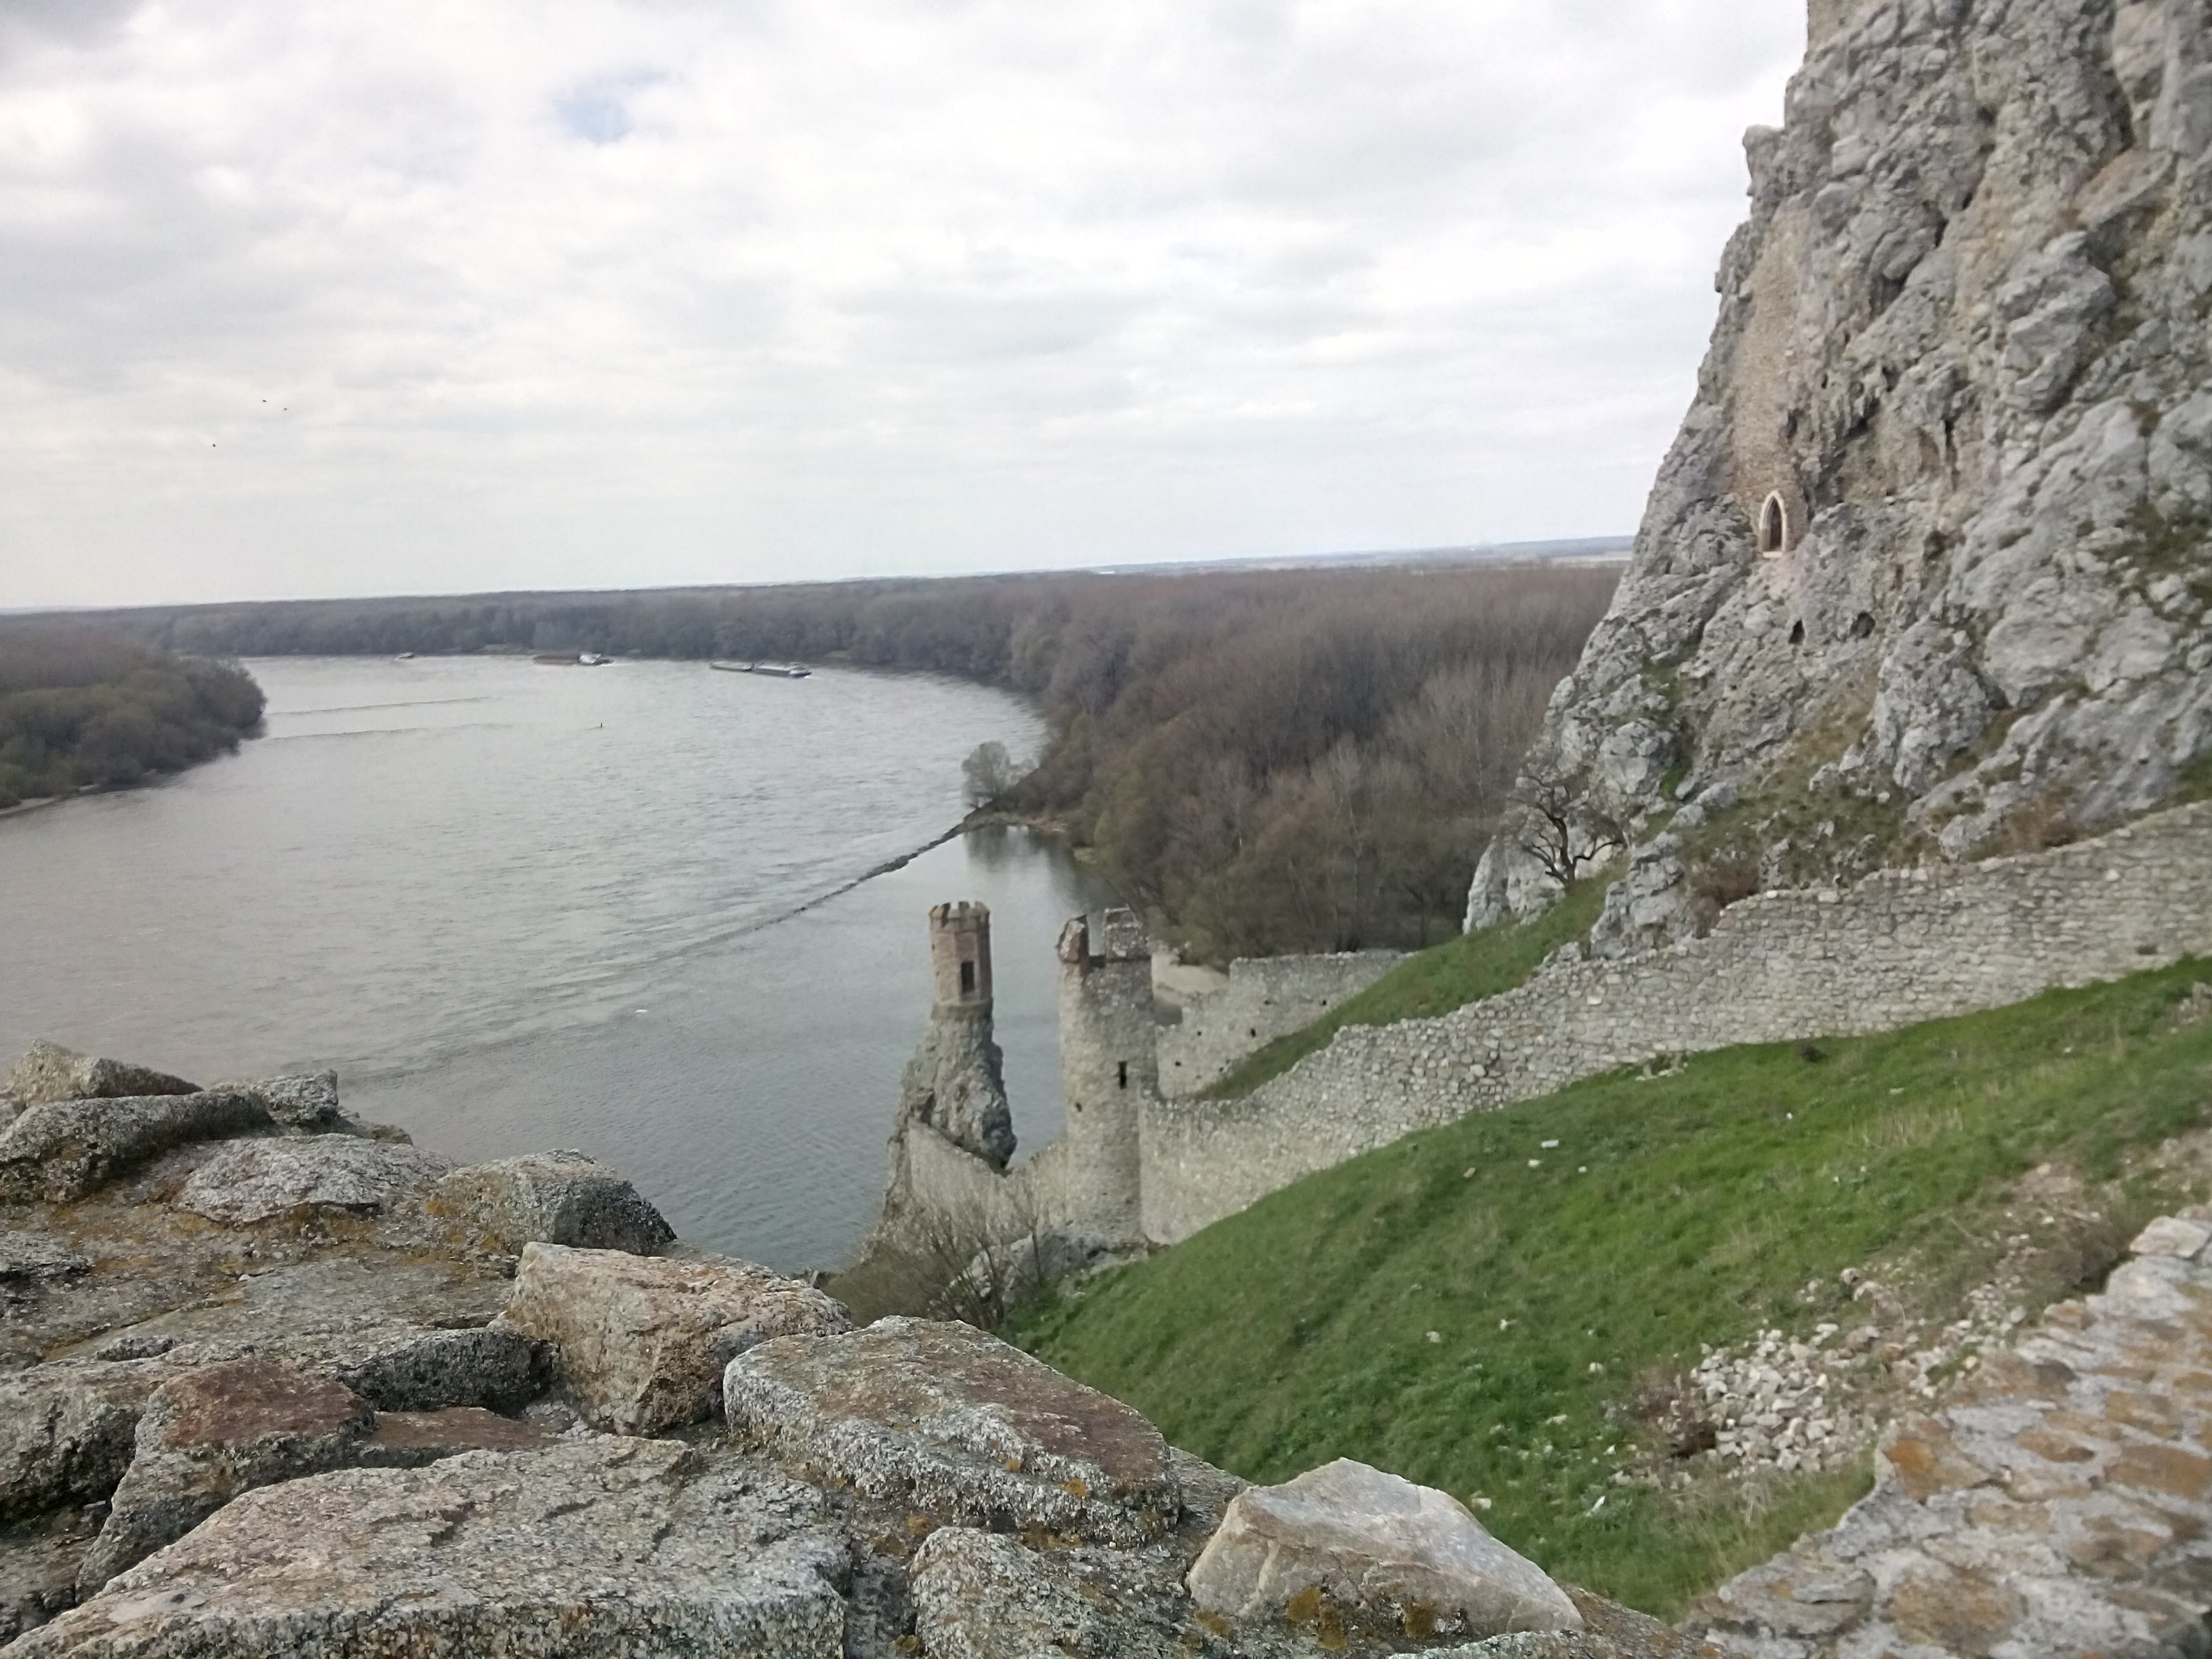 A rocky cliff to the right overlooking a curve in the river, the banks lined by bare trees